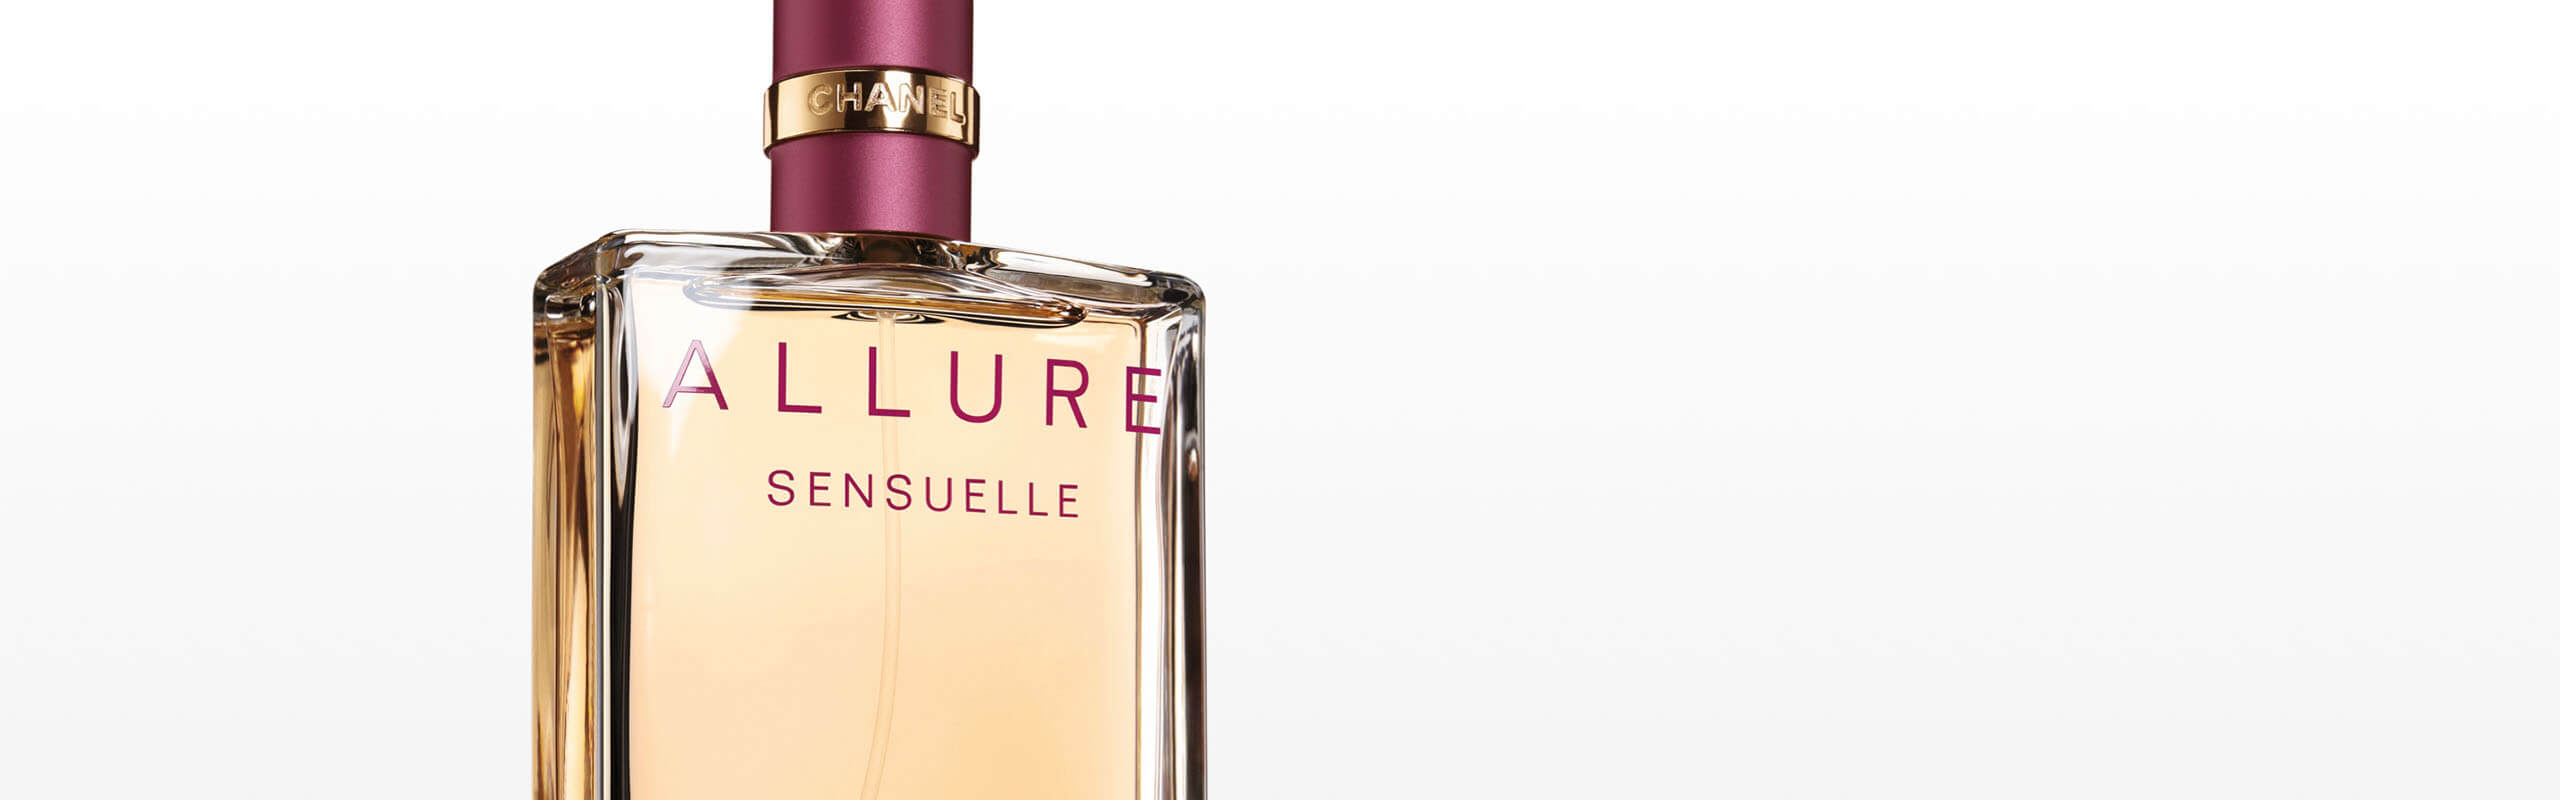 Allure Sensuelle - Fragrance | CHANEL